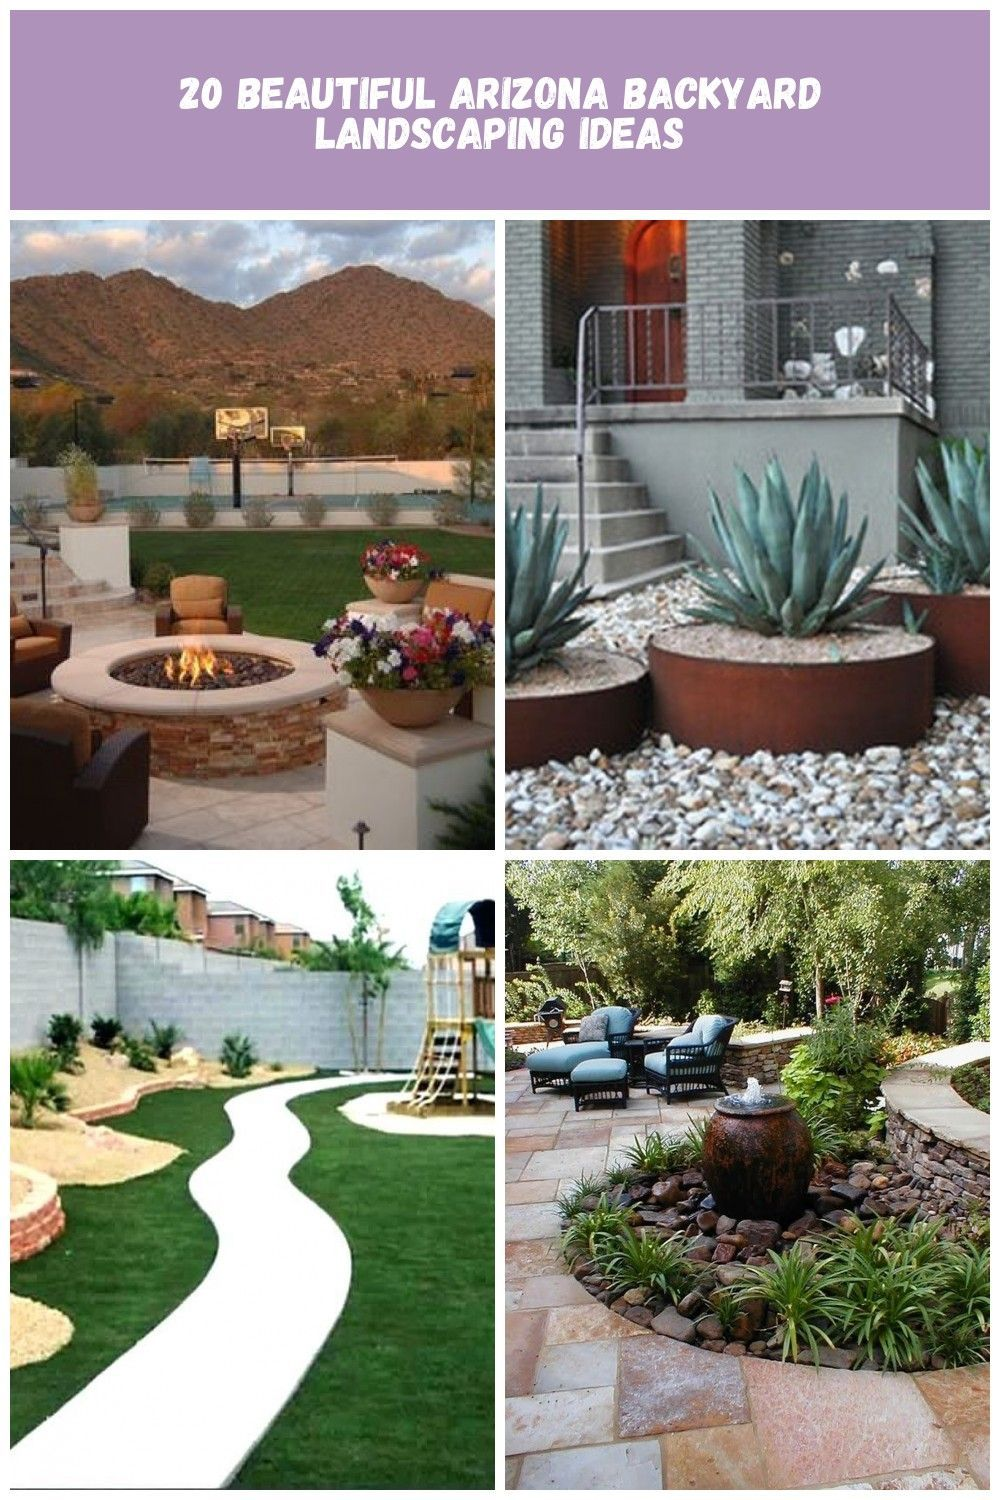 Diy Arizona Backyard Ideas